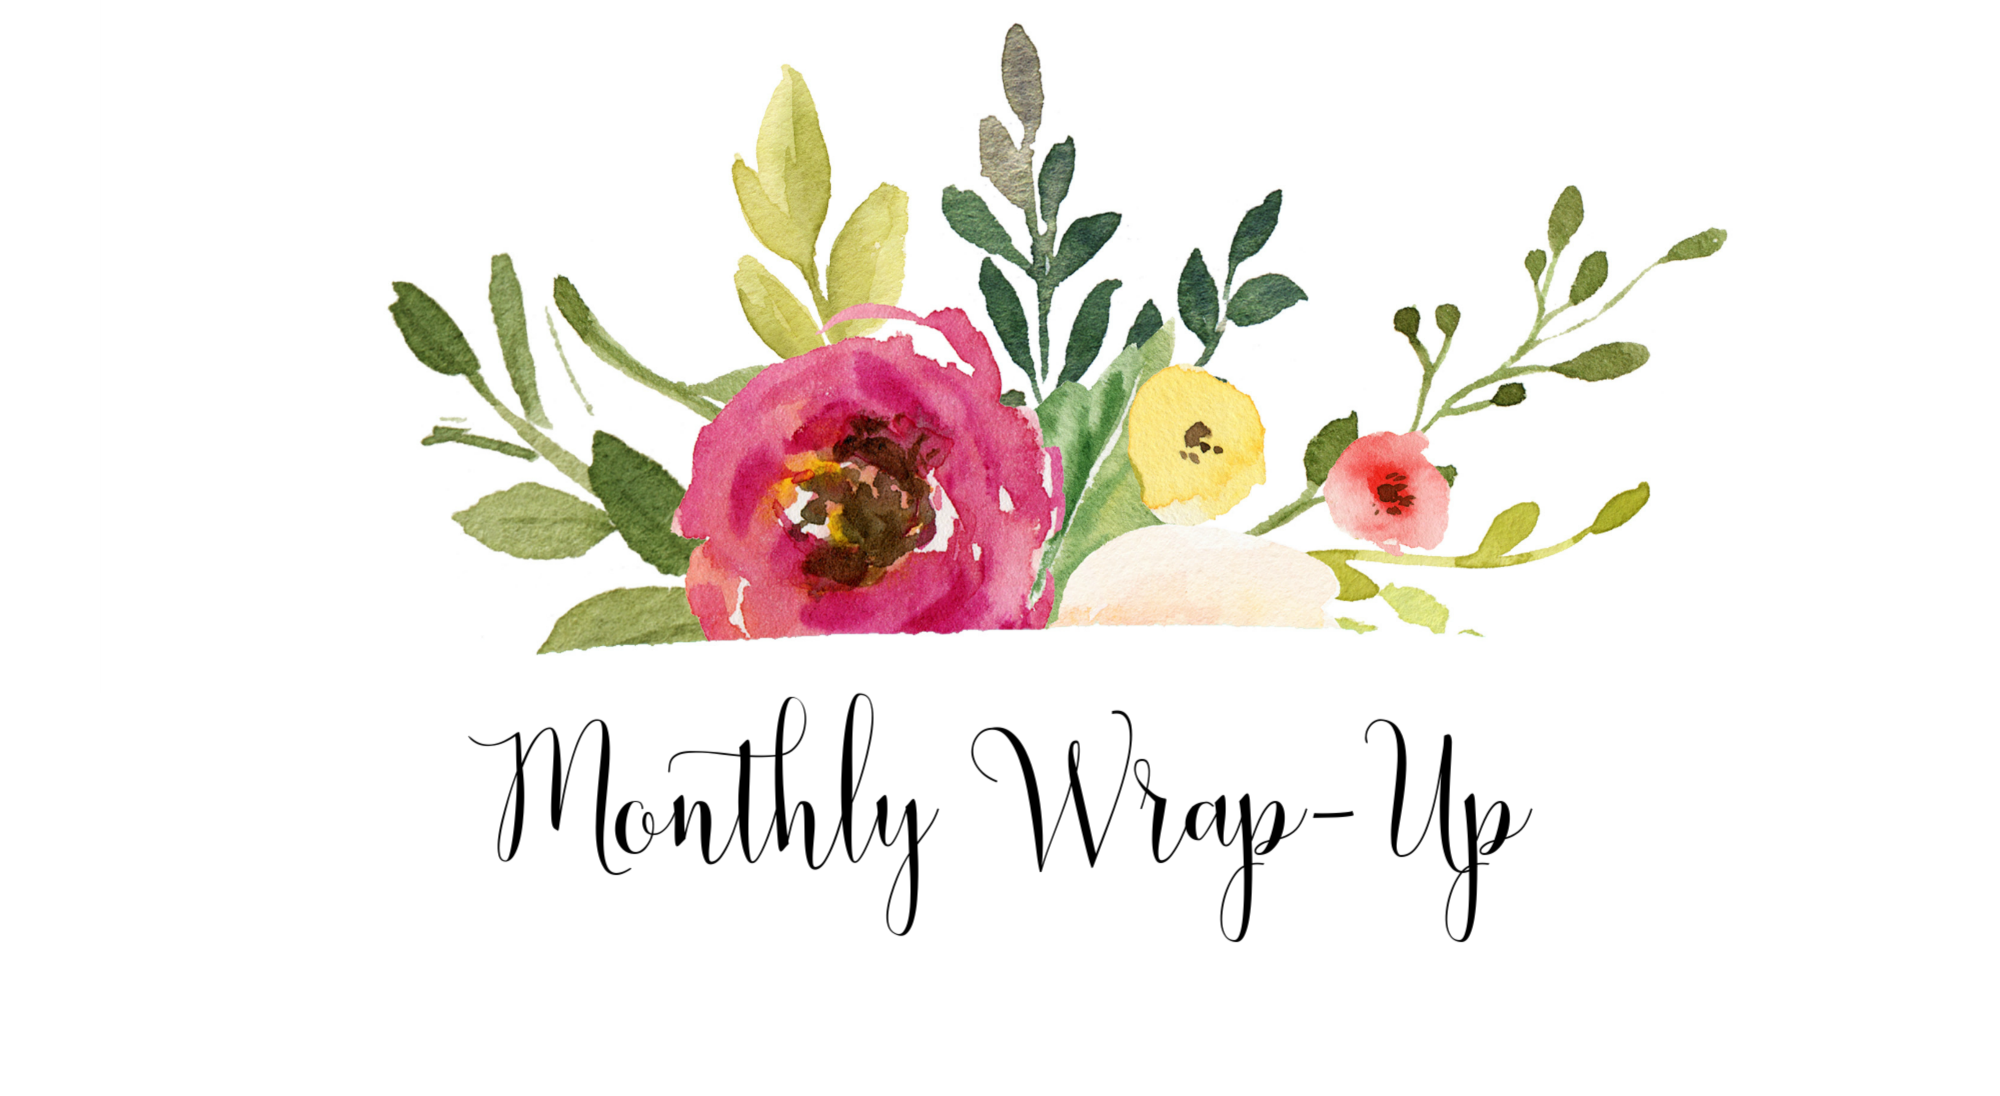 floral watercolor image with text below Monthly Wrap-Up